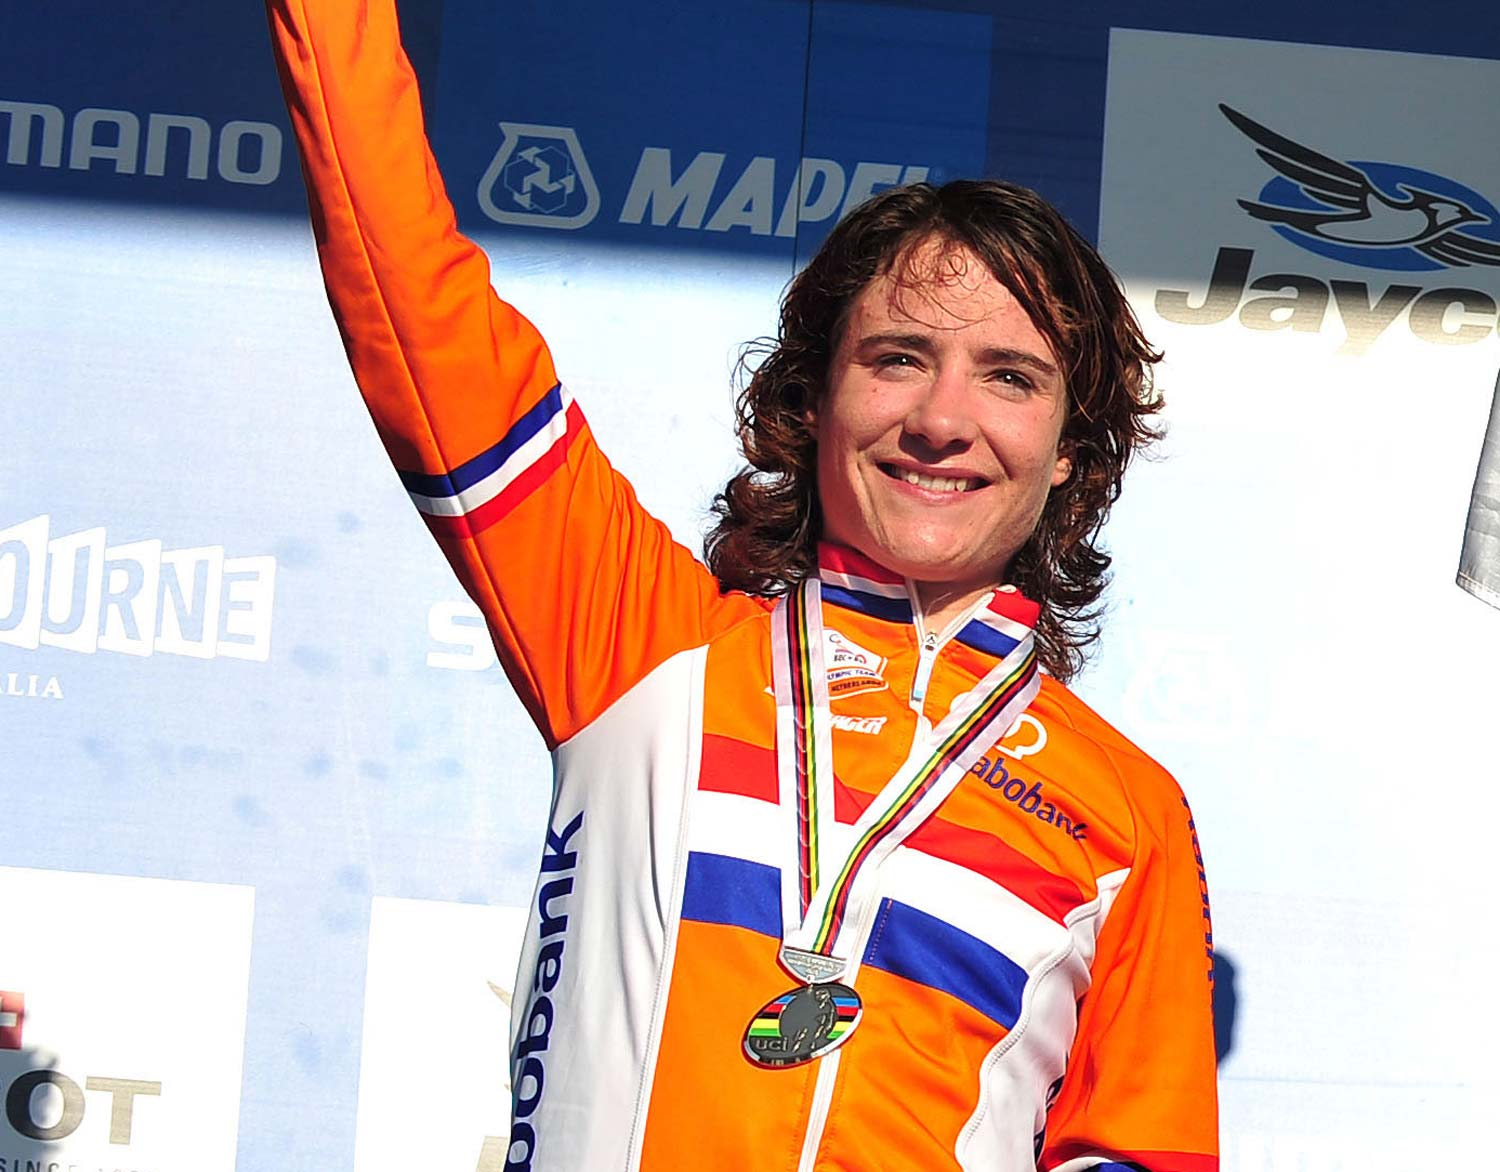 Marianne Vos during her visit to Australia in 2010 when she was second in the world championships. Photo: Sport – The Library